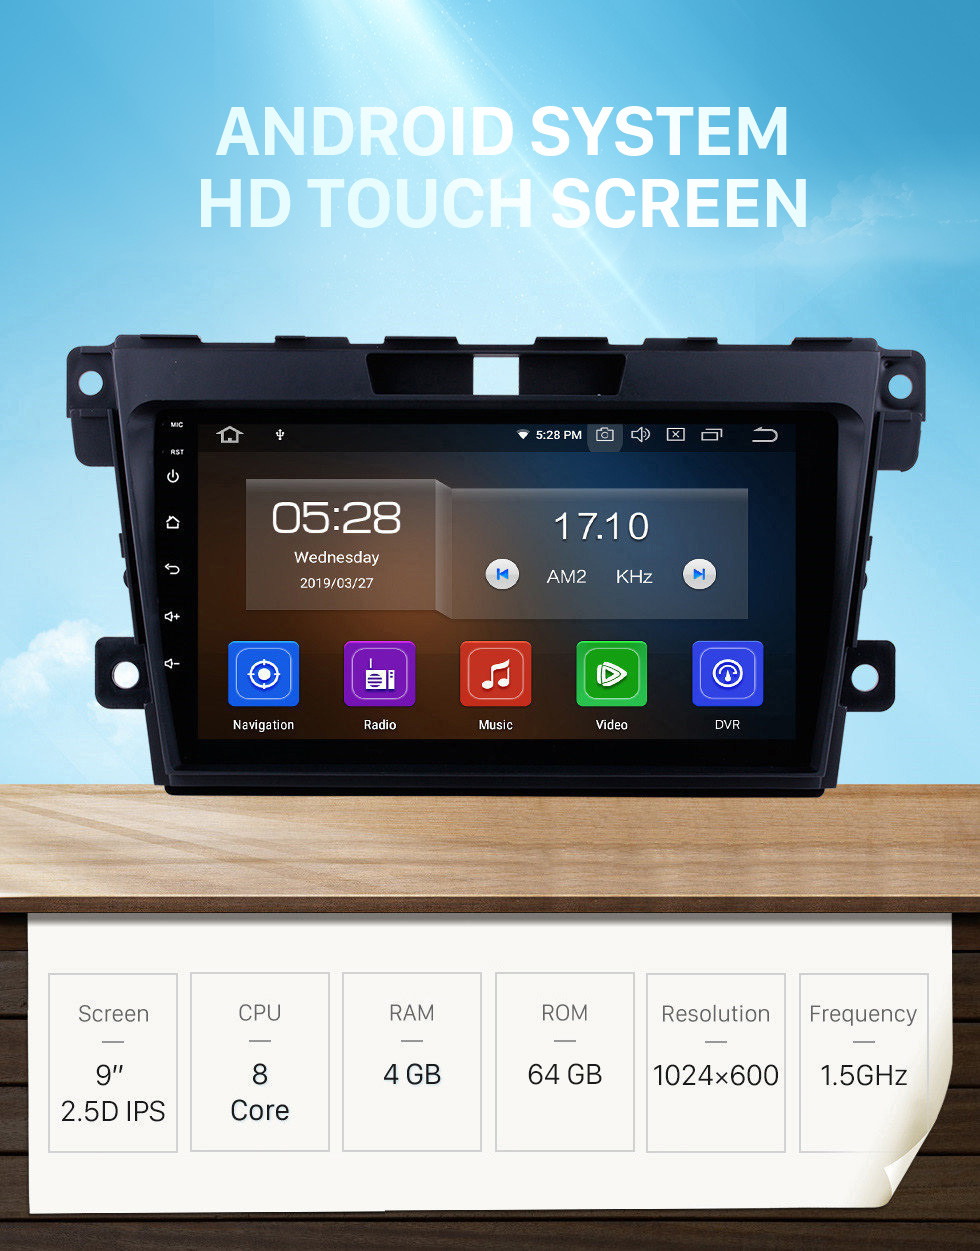 Seicane 9 inch Android 10.0 GPS Navigation Radio System for 2007 2008 2009 2010 2011 2012 2013 2014 Mazda CX-7 with Multi-touch Screen Mirror Link OBD DVR Bluetooth Rearview Camera TV USB 3G WIFI